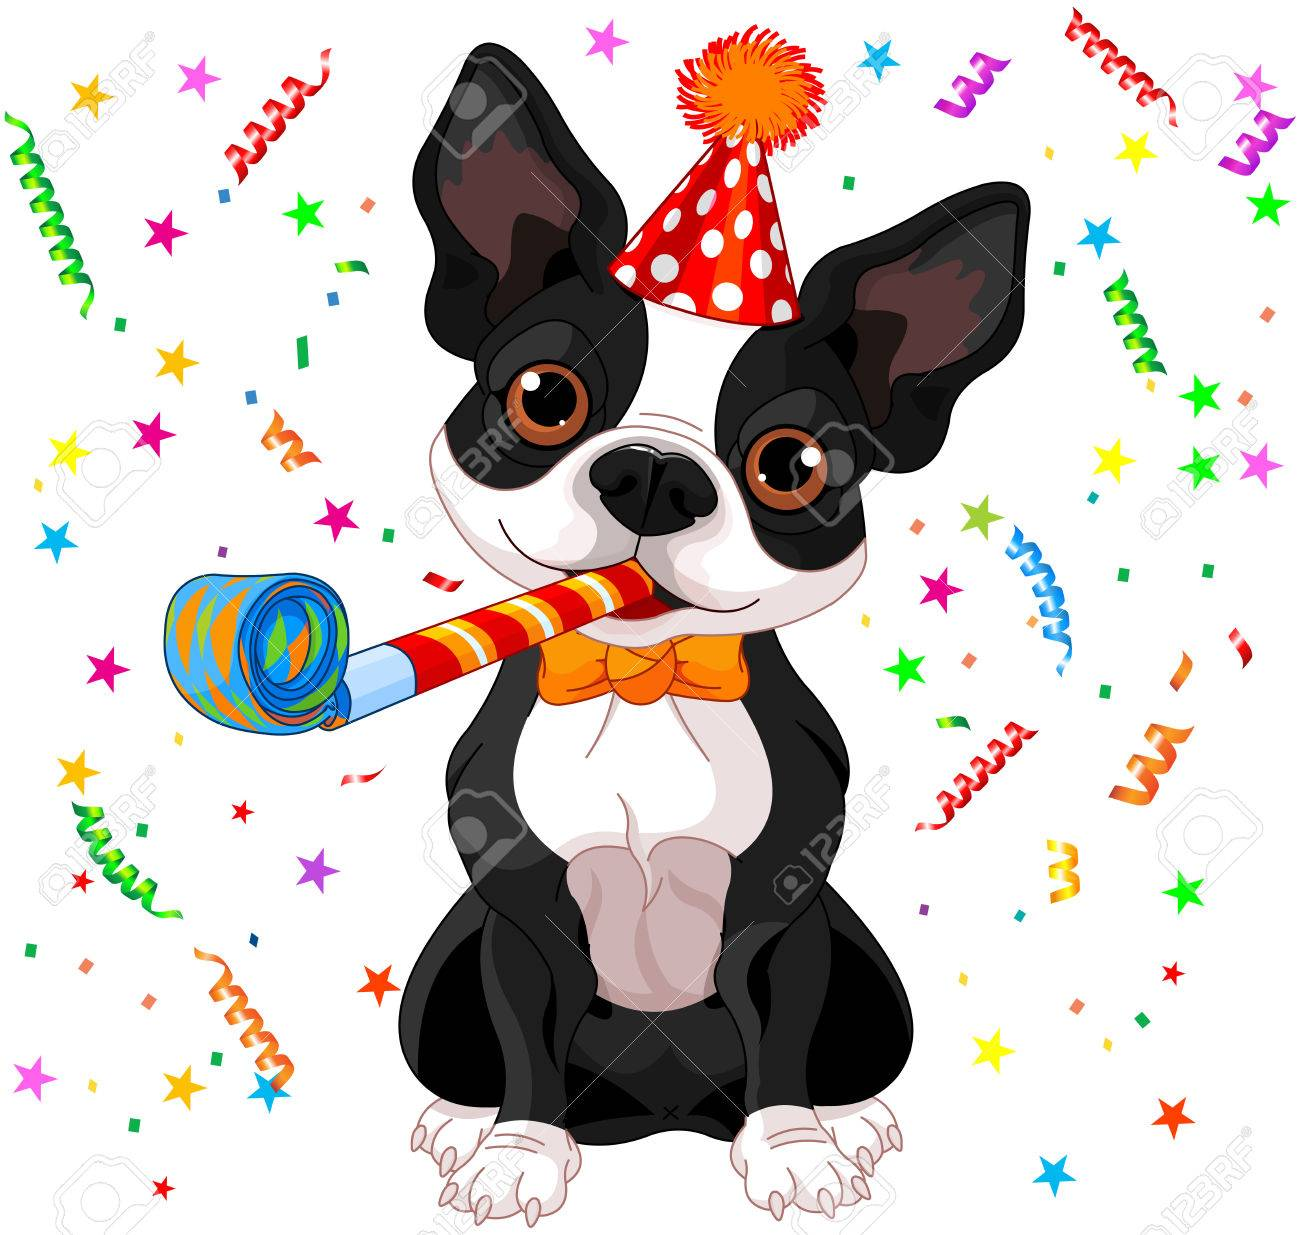 Comment démarrer une rencontre canine? - Page 5 35588778-illustration-of-cute-boston-terrier-celebrating